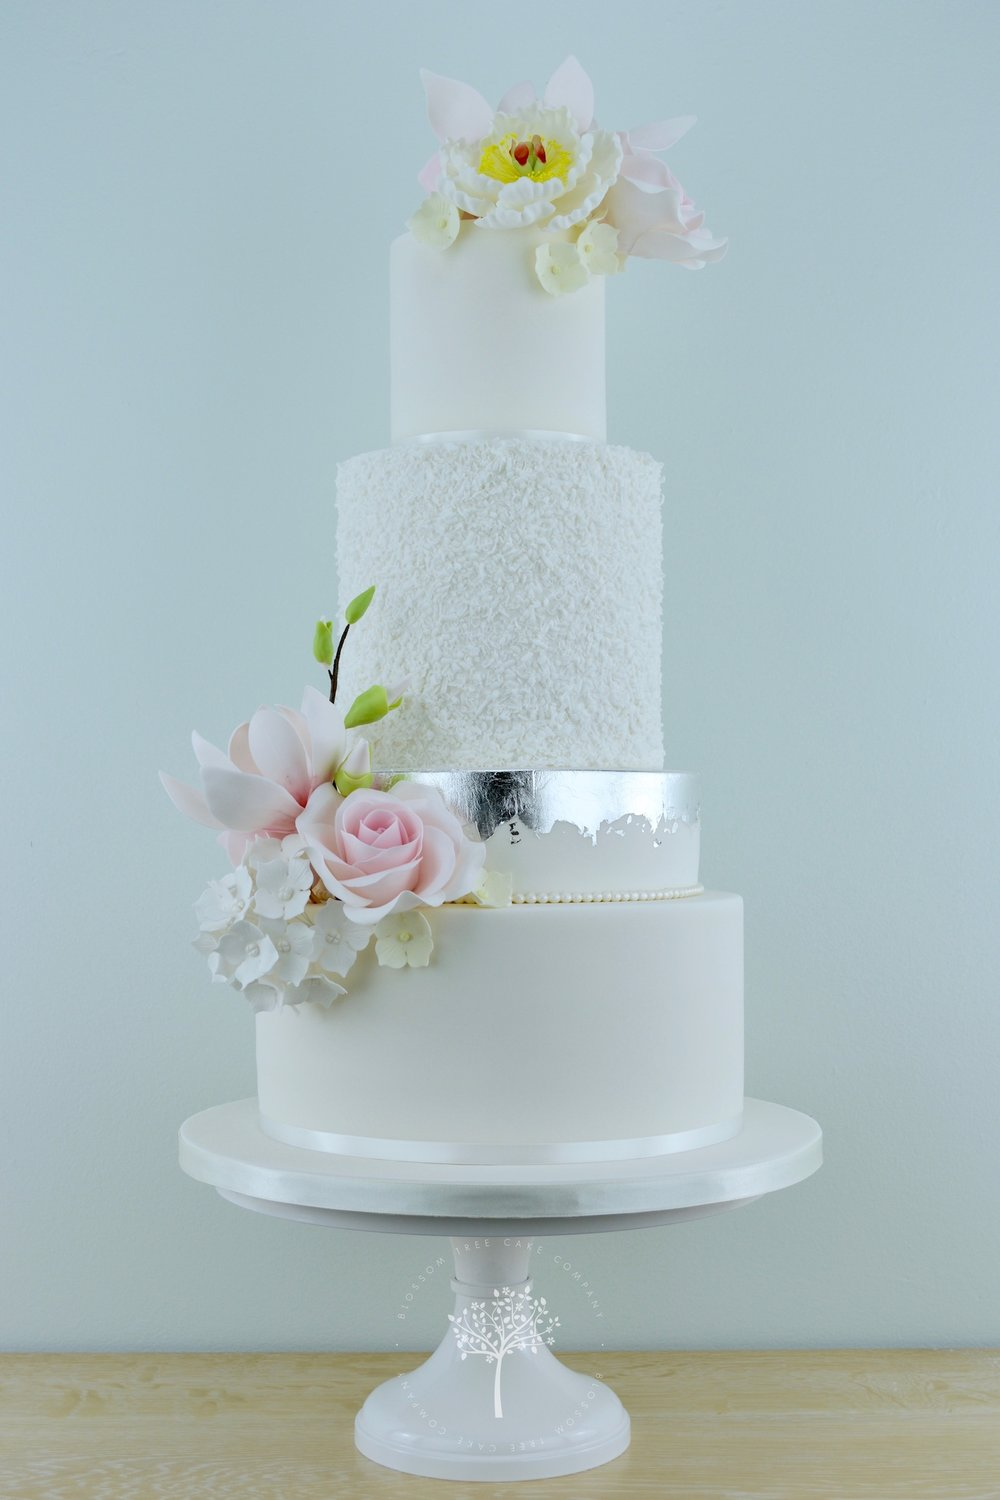 Magnolia Roses and Peony wedding cake by Blossom Tree Cake Company Harrogate North Yorkshire.jpg